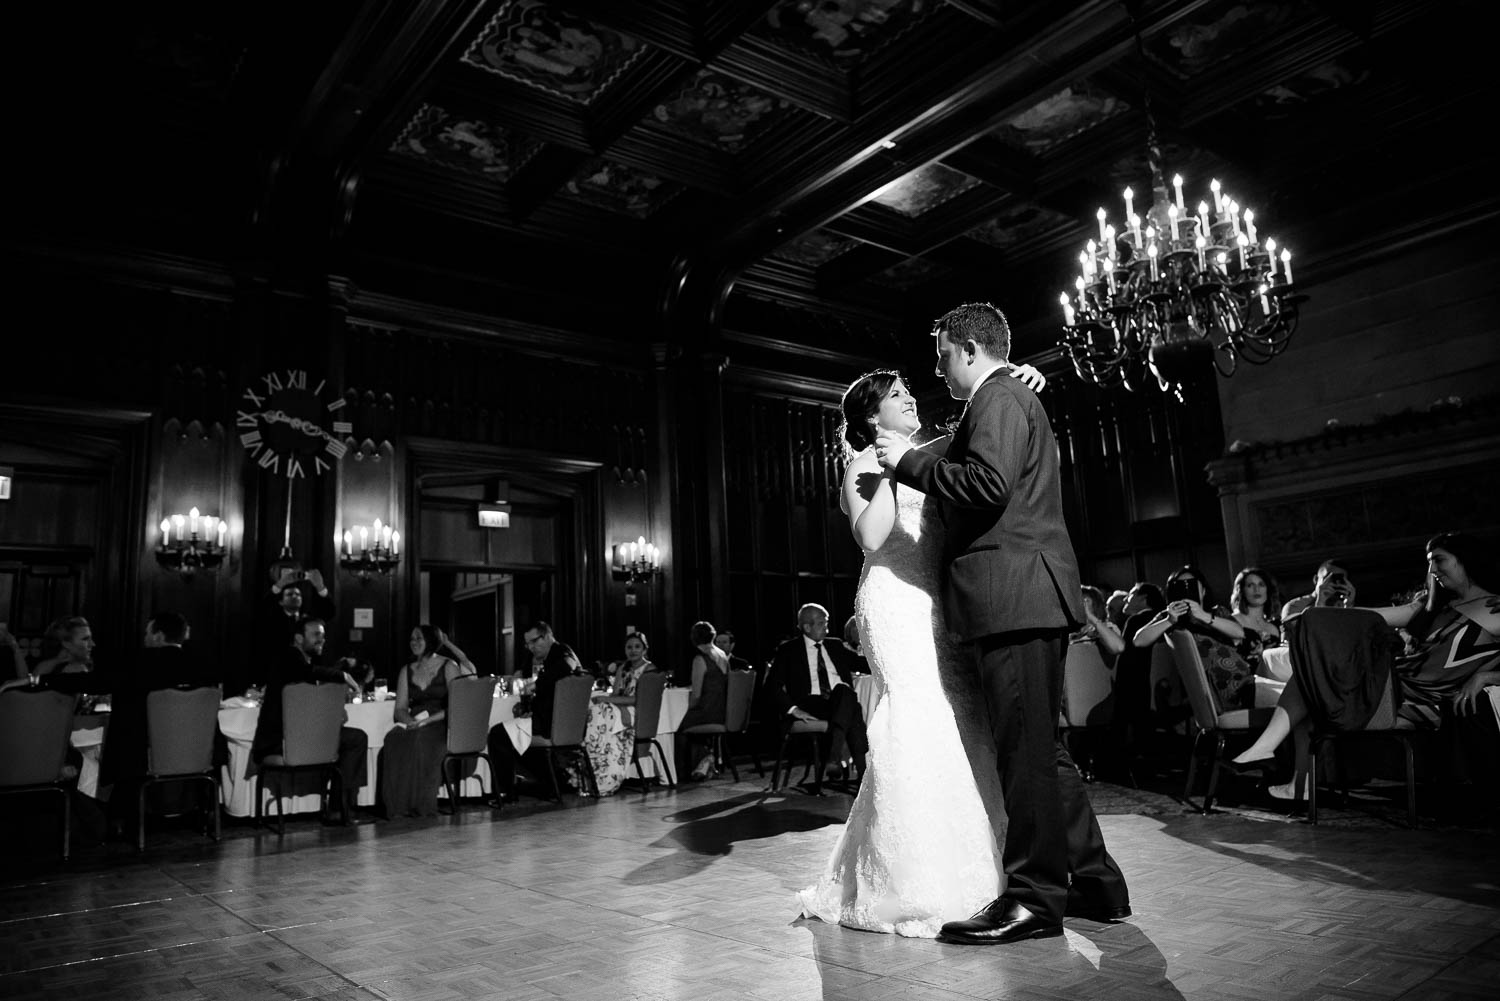 First dance in the Michigan Room during a University Club of Chicago wedding.